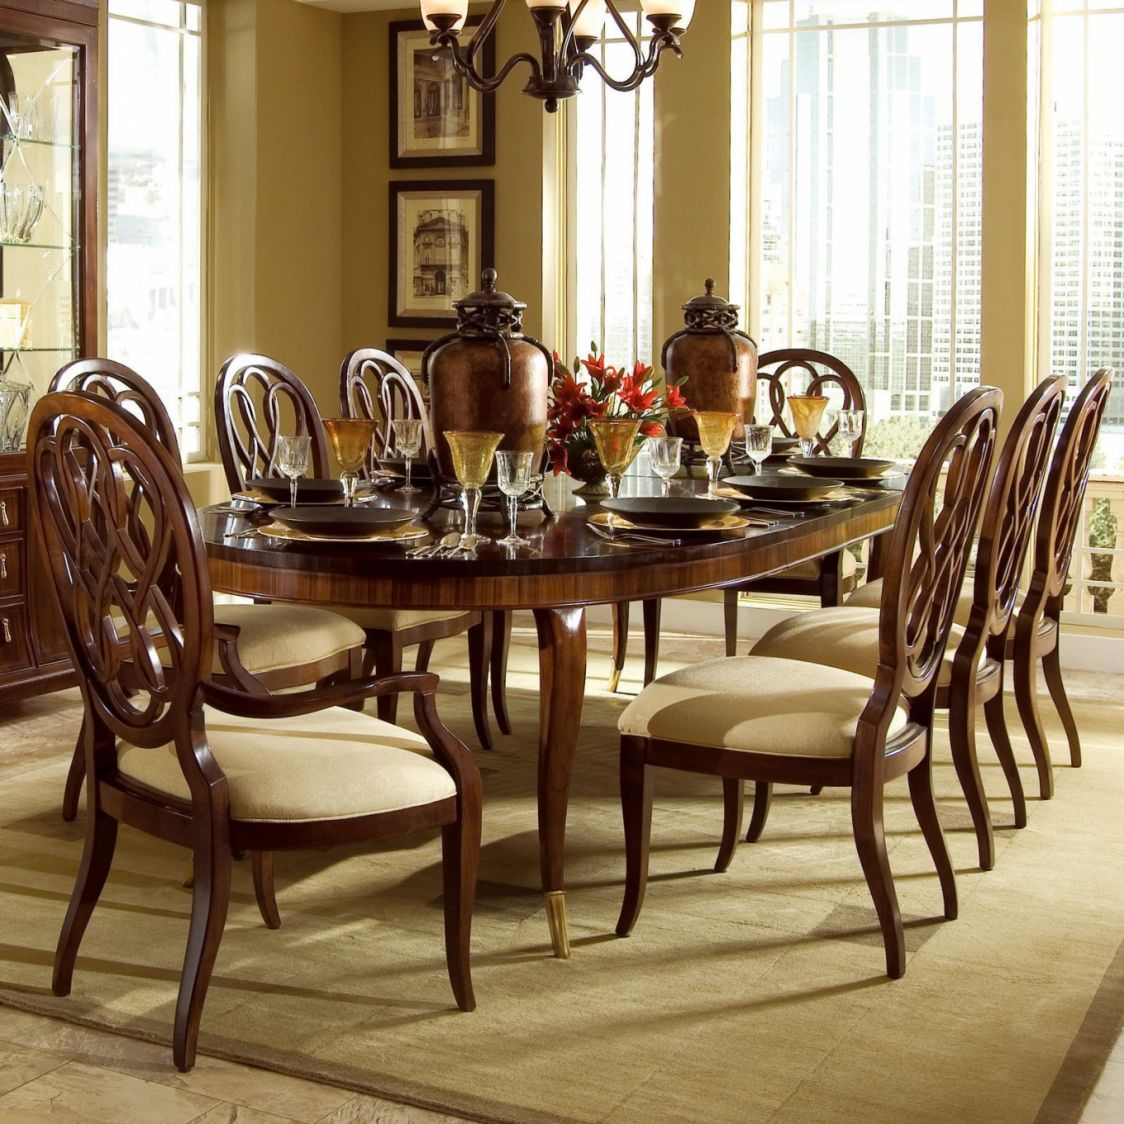 Havertys Furniture Dining Room Set   Cool Modern Furniture Check More At  Http://